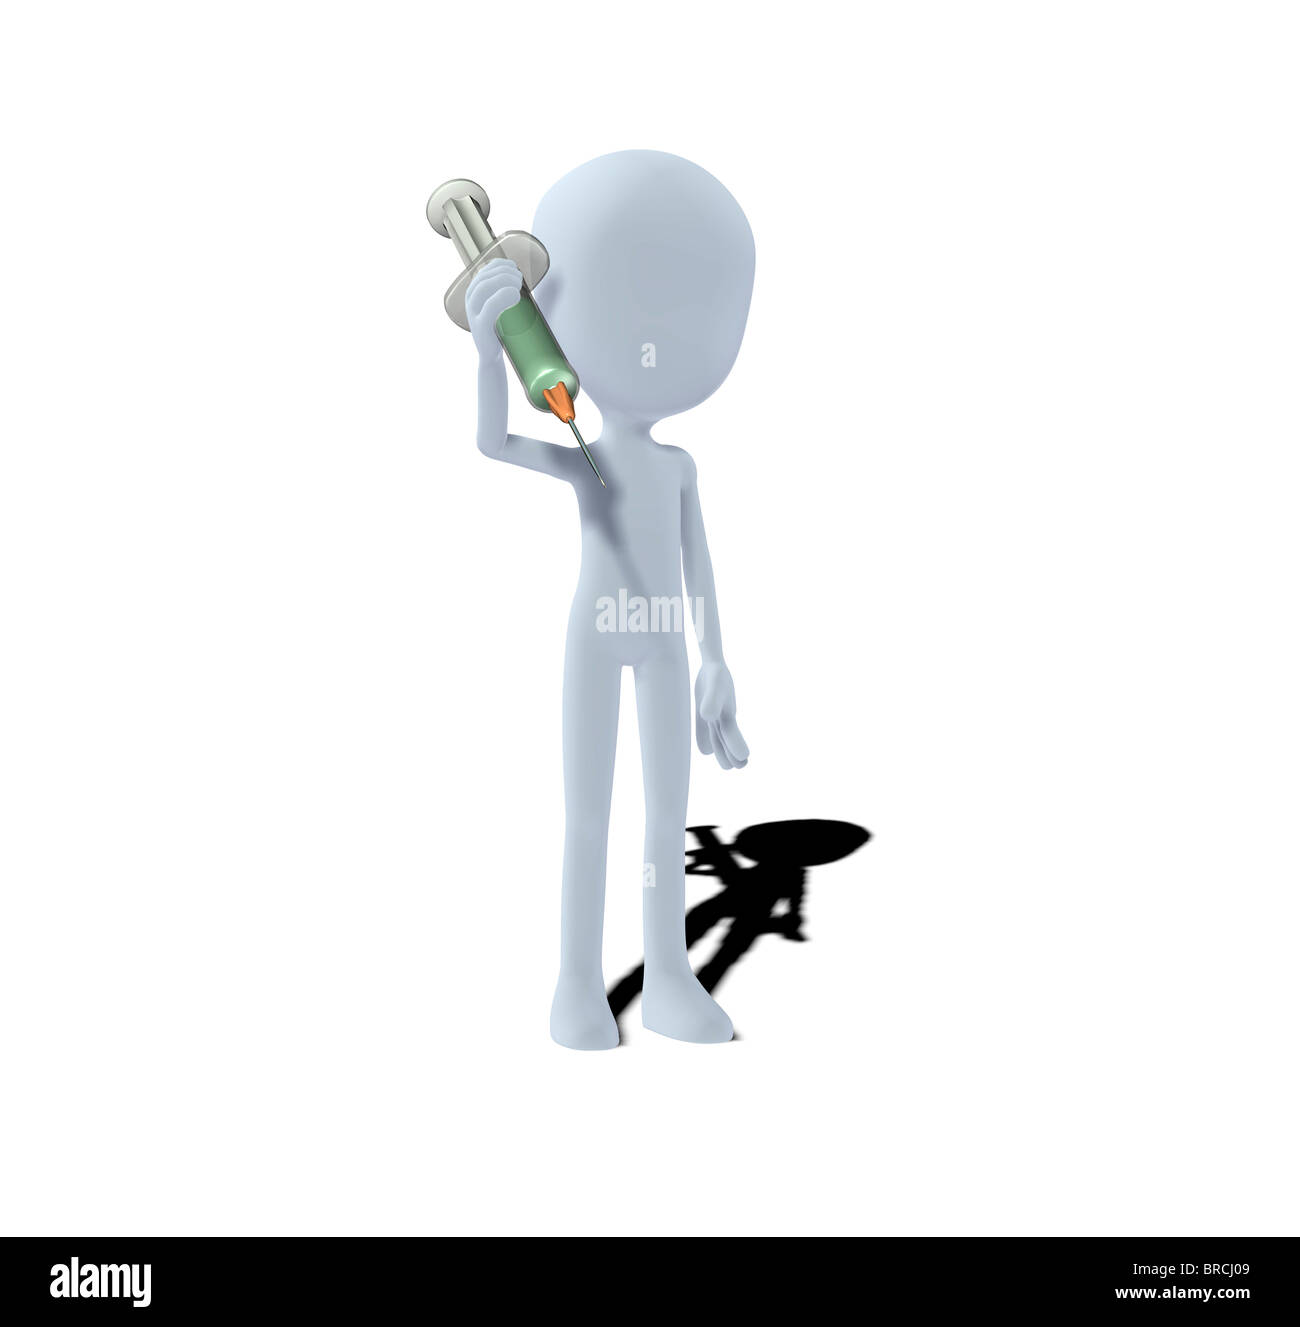 concept figure with syringe - Stock Image